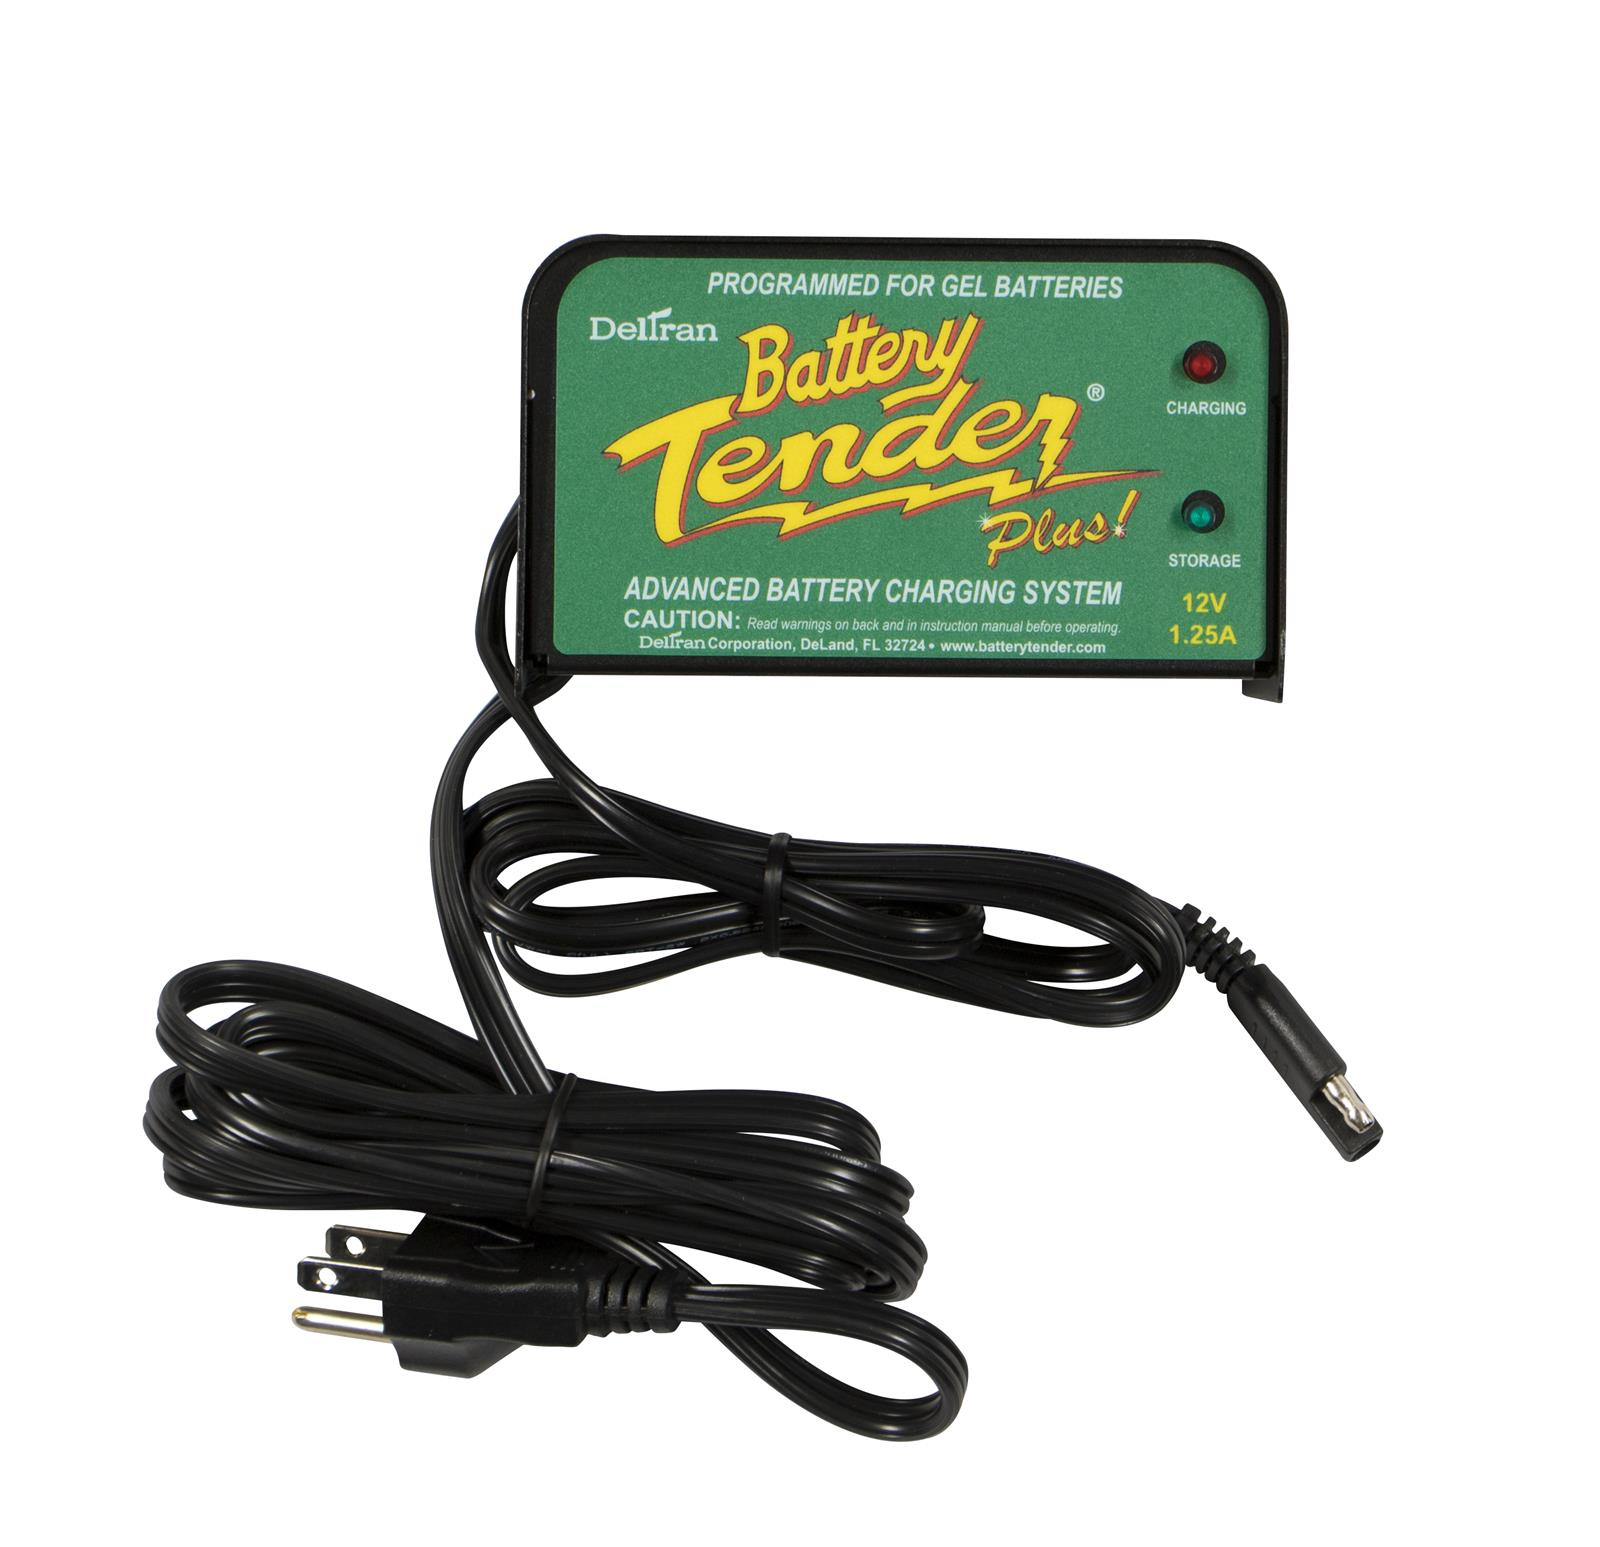 Adapting Solar Panel For Tractor Battery Tender together with Honda Generator Battery Charger further Little Fuse Box together with Dual Bank Marine Battery Charger Battery Charge also Schumacher Battery Charger Wiring Diagram Model. on battery tender circuit diagram